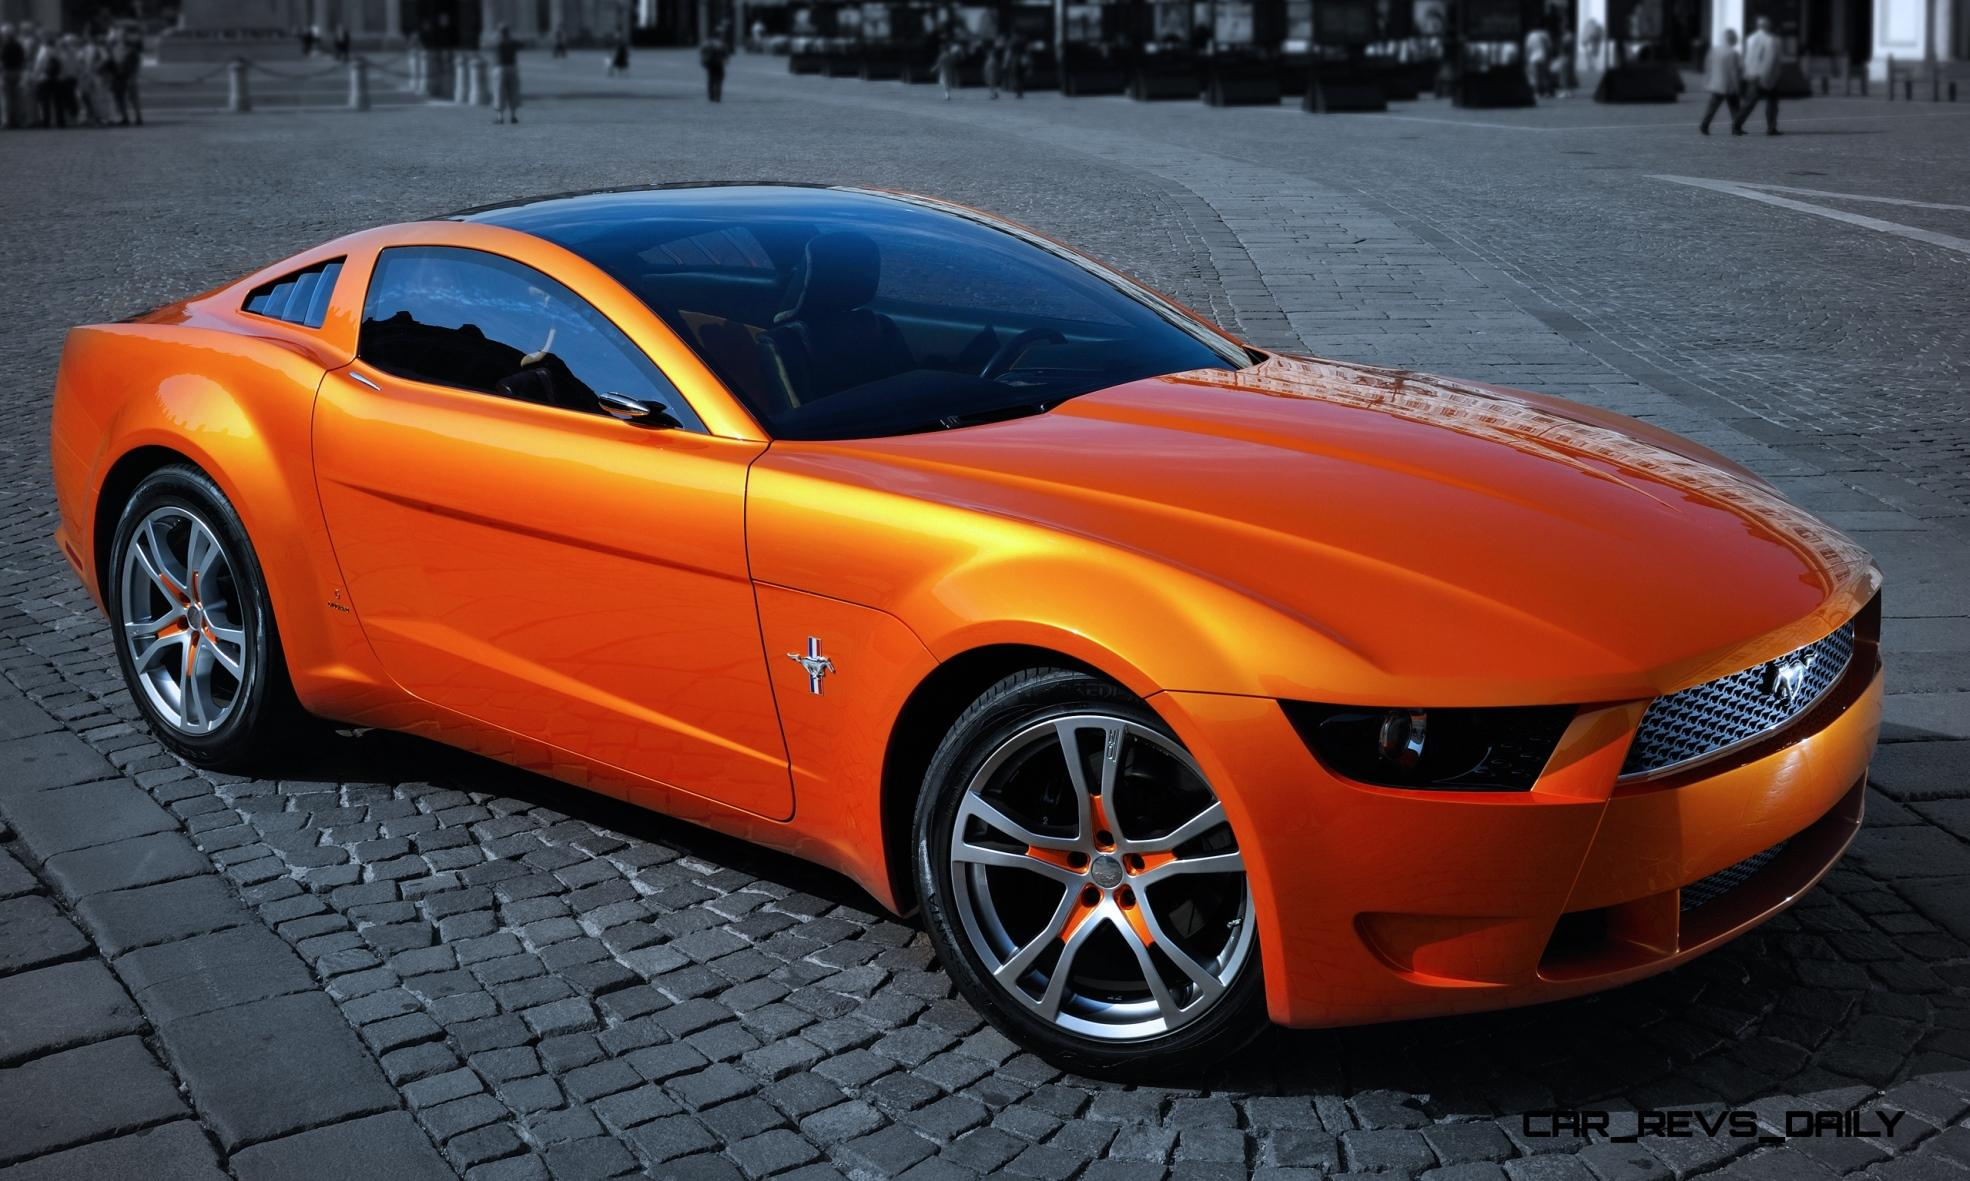 2006 Giugiaro Ford Mustang Concept Was Ringer vs In-House Ford Designs